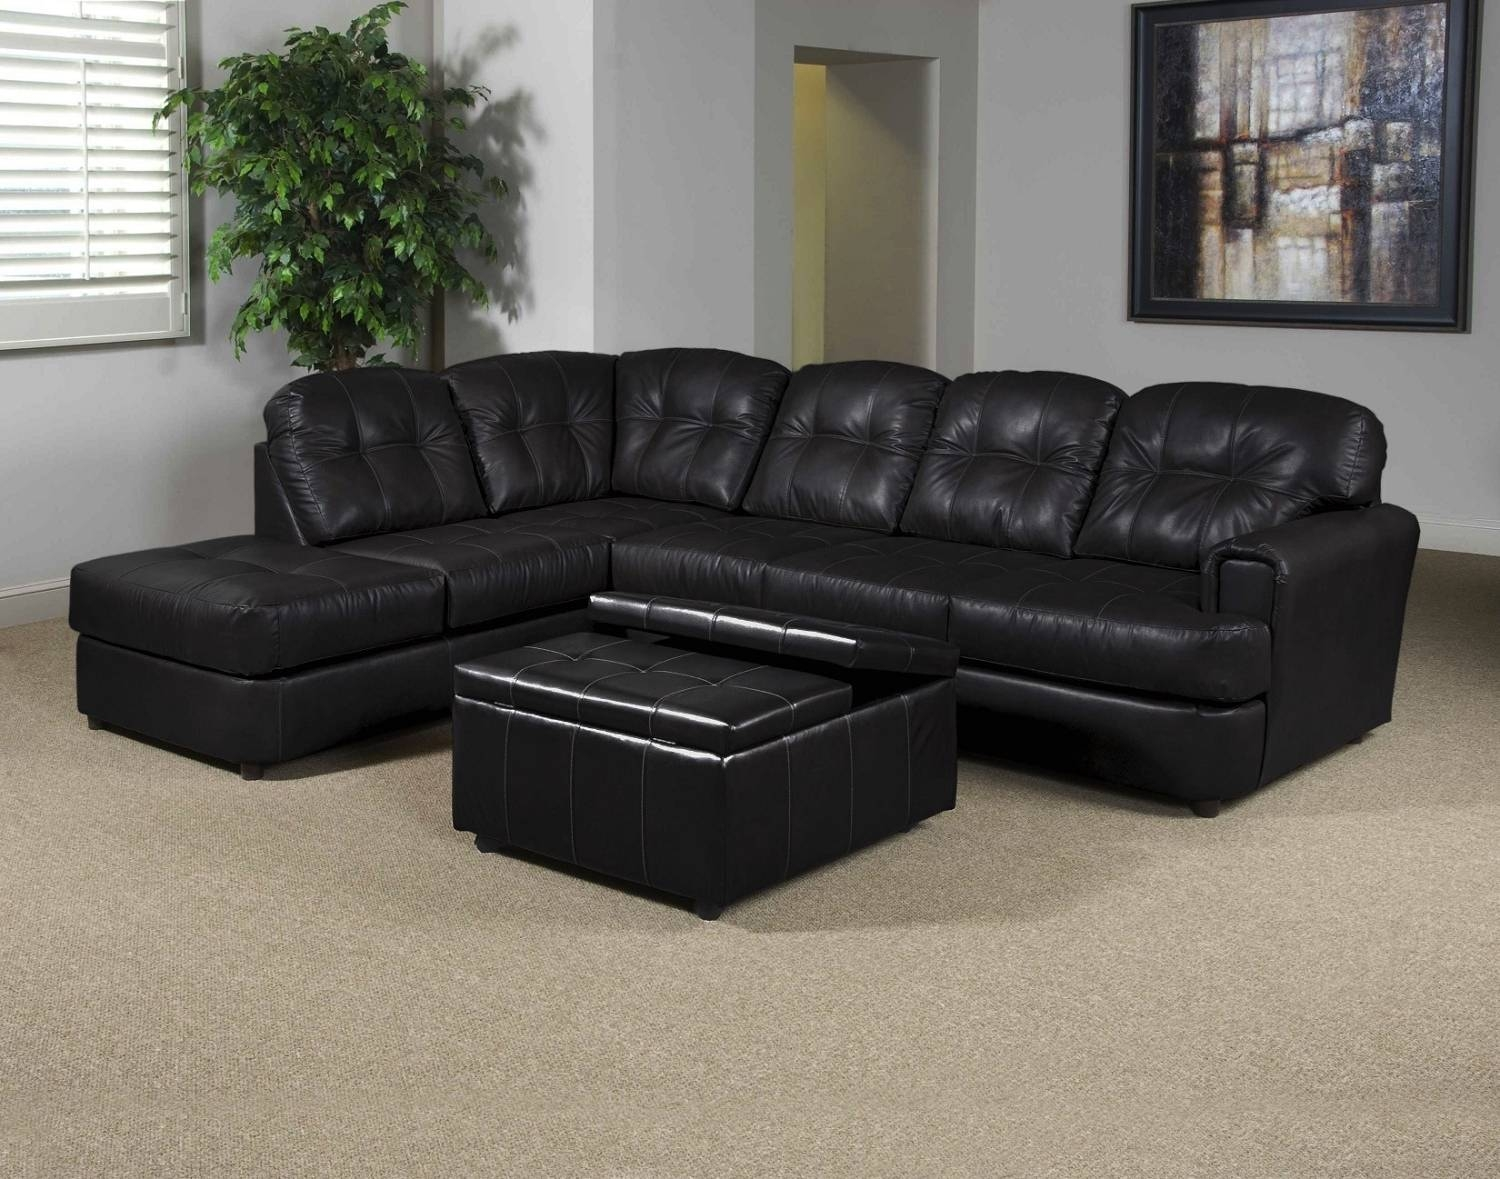 Interior: Gorgeous Lady Charcoal Sectional For Living Room pertaining to Sectional Sofa With Oversized Ottoman (Image 16 of 30)